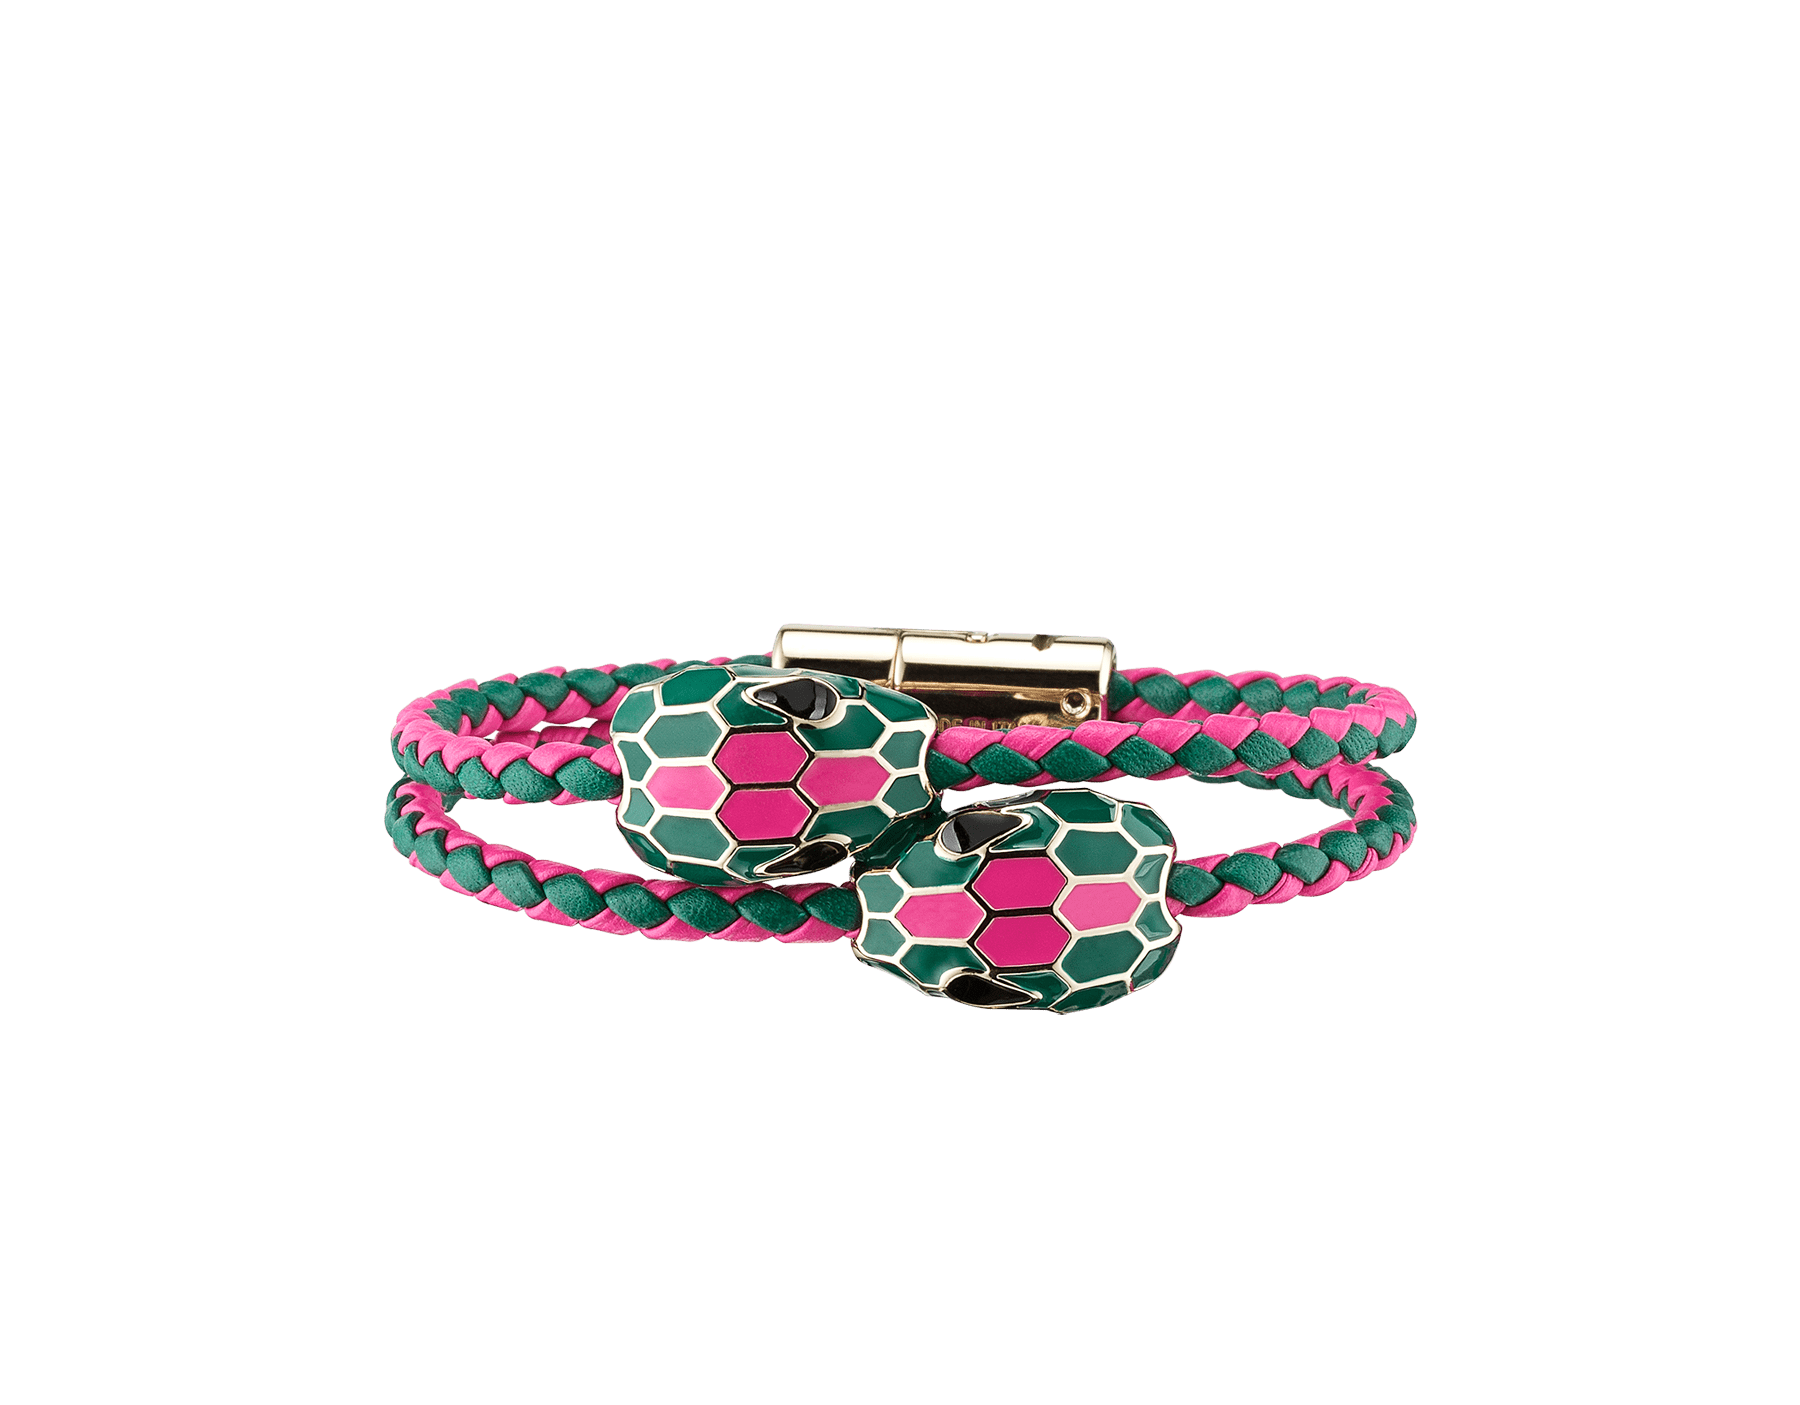 Serpenti Forever double braid bracelet in flash amethyst and emerald green woven calf leather with a double snake head décor in emerald green and flash amethyst enamel. NewDoubleBraid-WCL-FAEG image 1